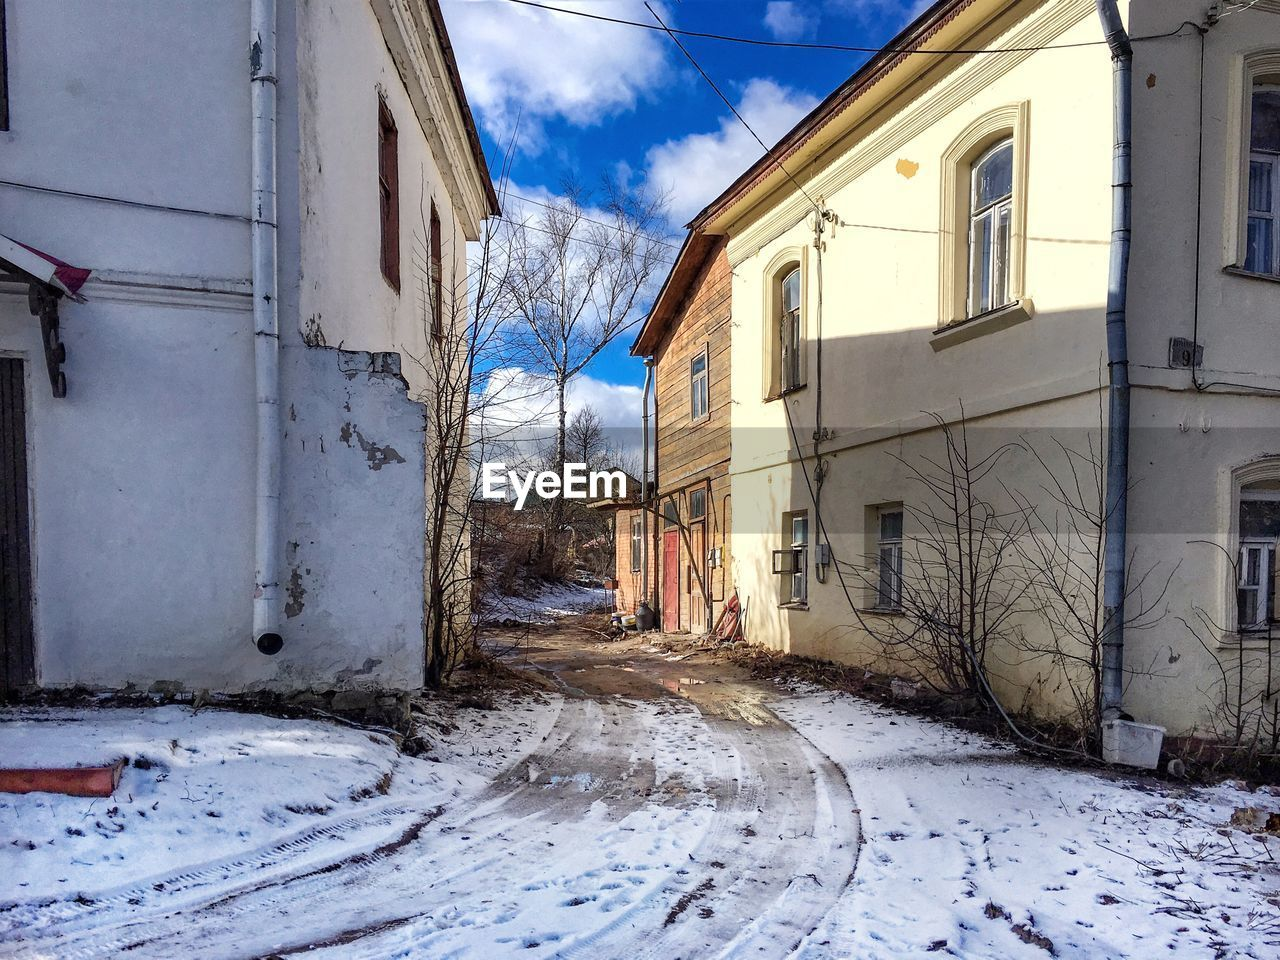 building exterior, architecture, built structure, snow, house, winter, sky, no people, cold temperature, abandoned, day, outdoors, window, residential building, nature